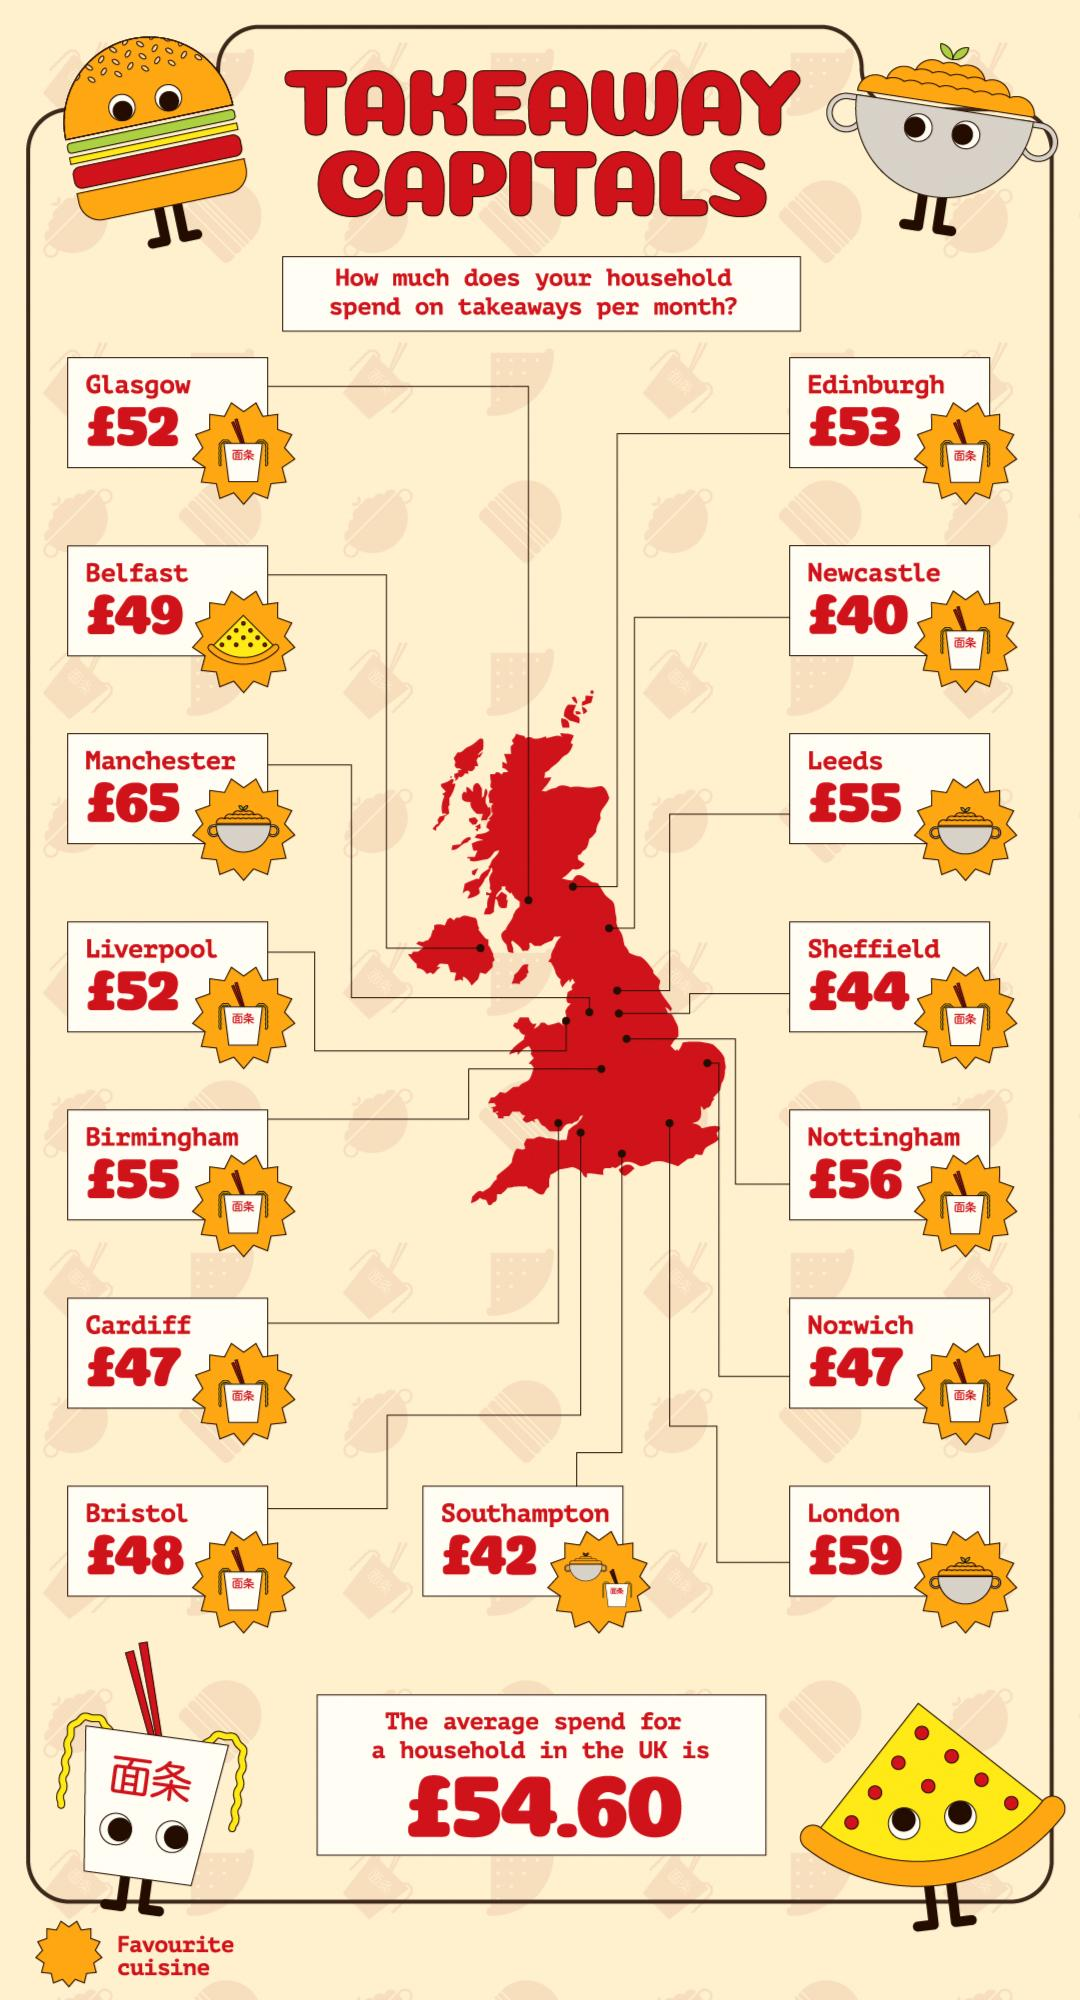 Average spend on takeaways per month in the UK